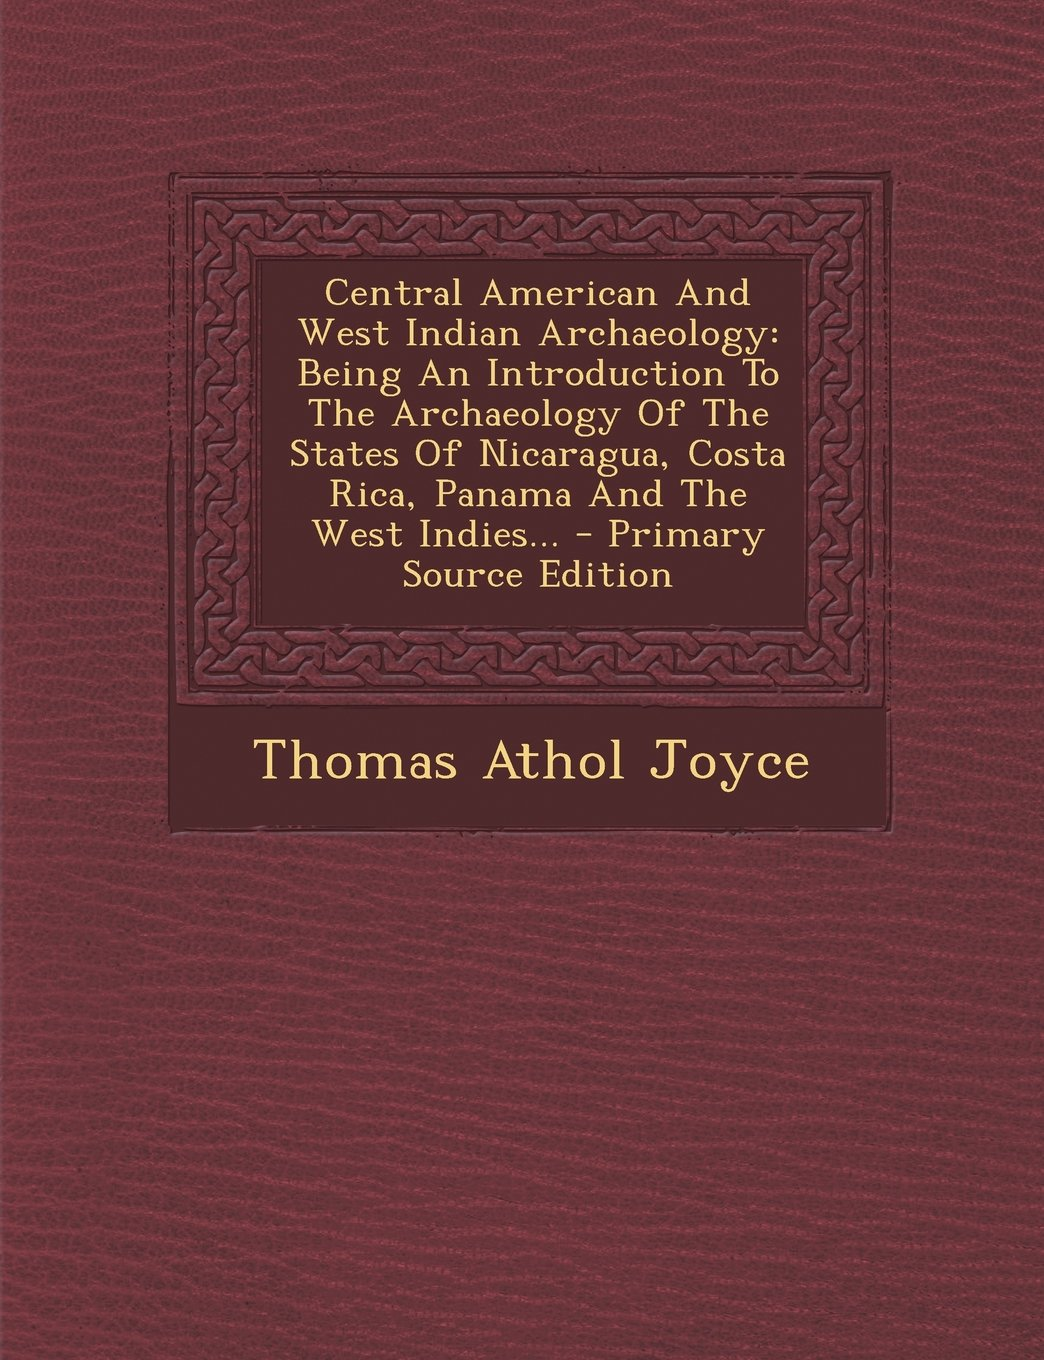 Central American And West Indian Archaeology: Being An Introduction To The Archaeology Of The States Of Nicaragua, Costa Rica, Panama And The West Indies... - Primary Source Edition